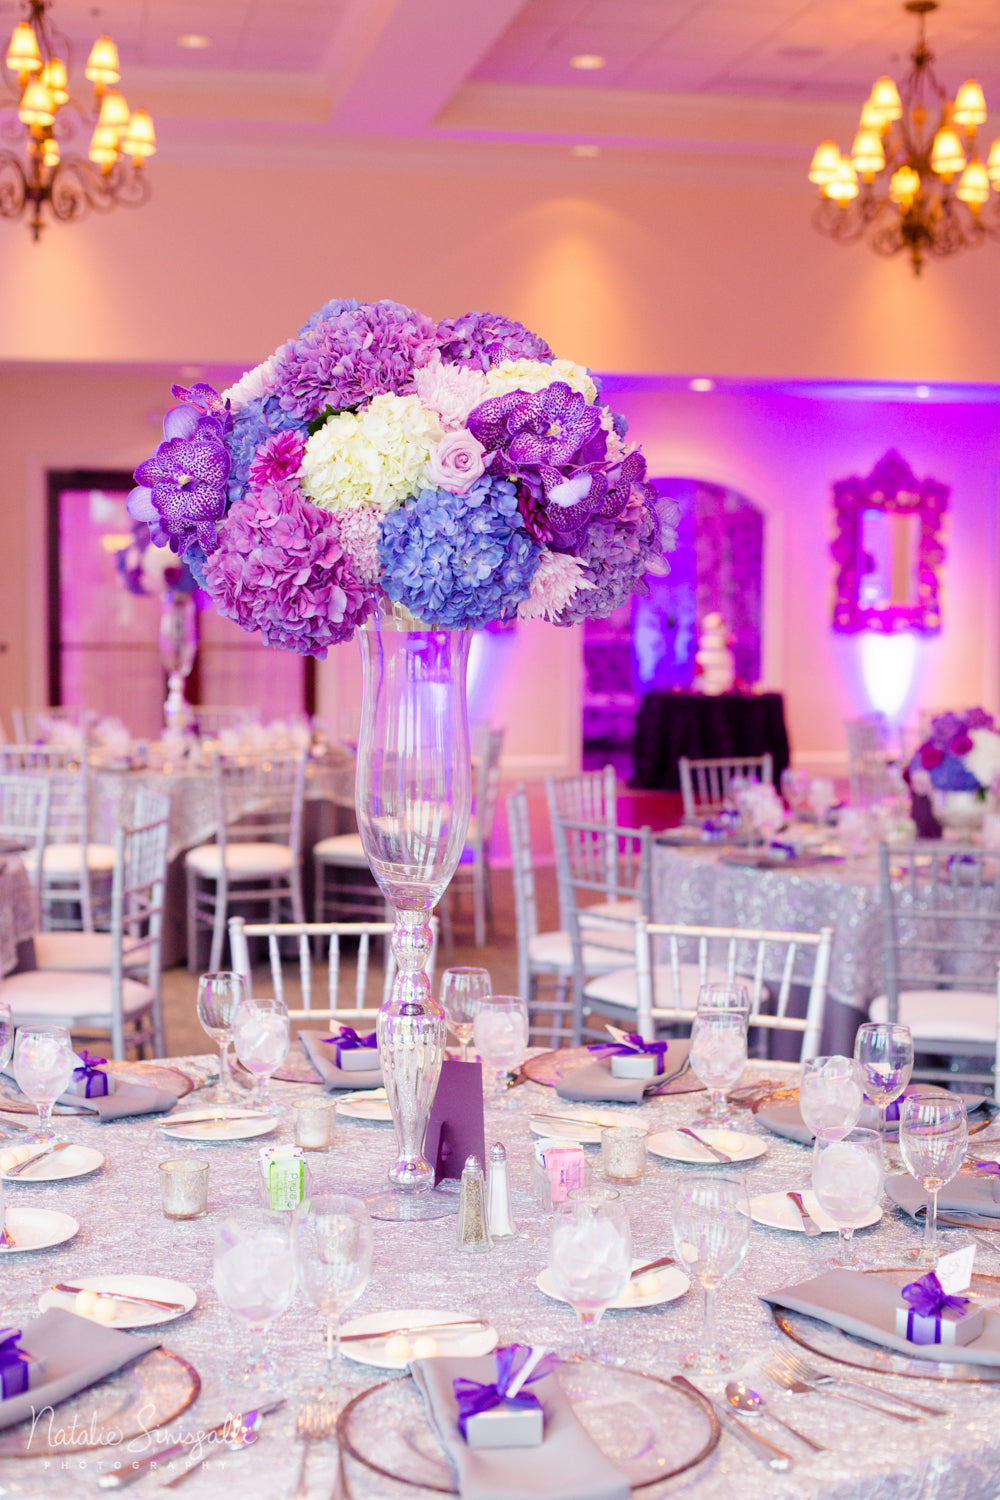 Irondequoit-Country-Club-Wedding-Flowers-Stacy-K-Floral-26